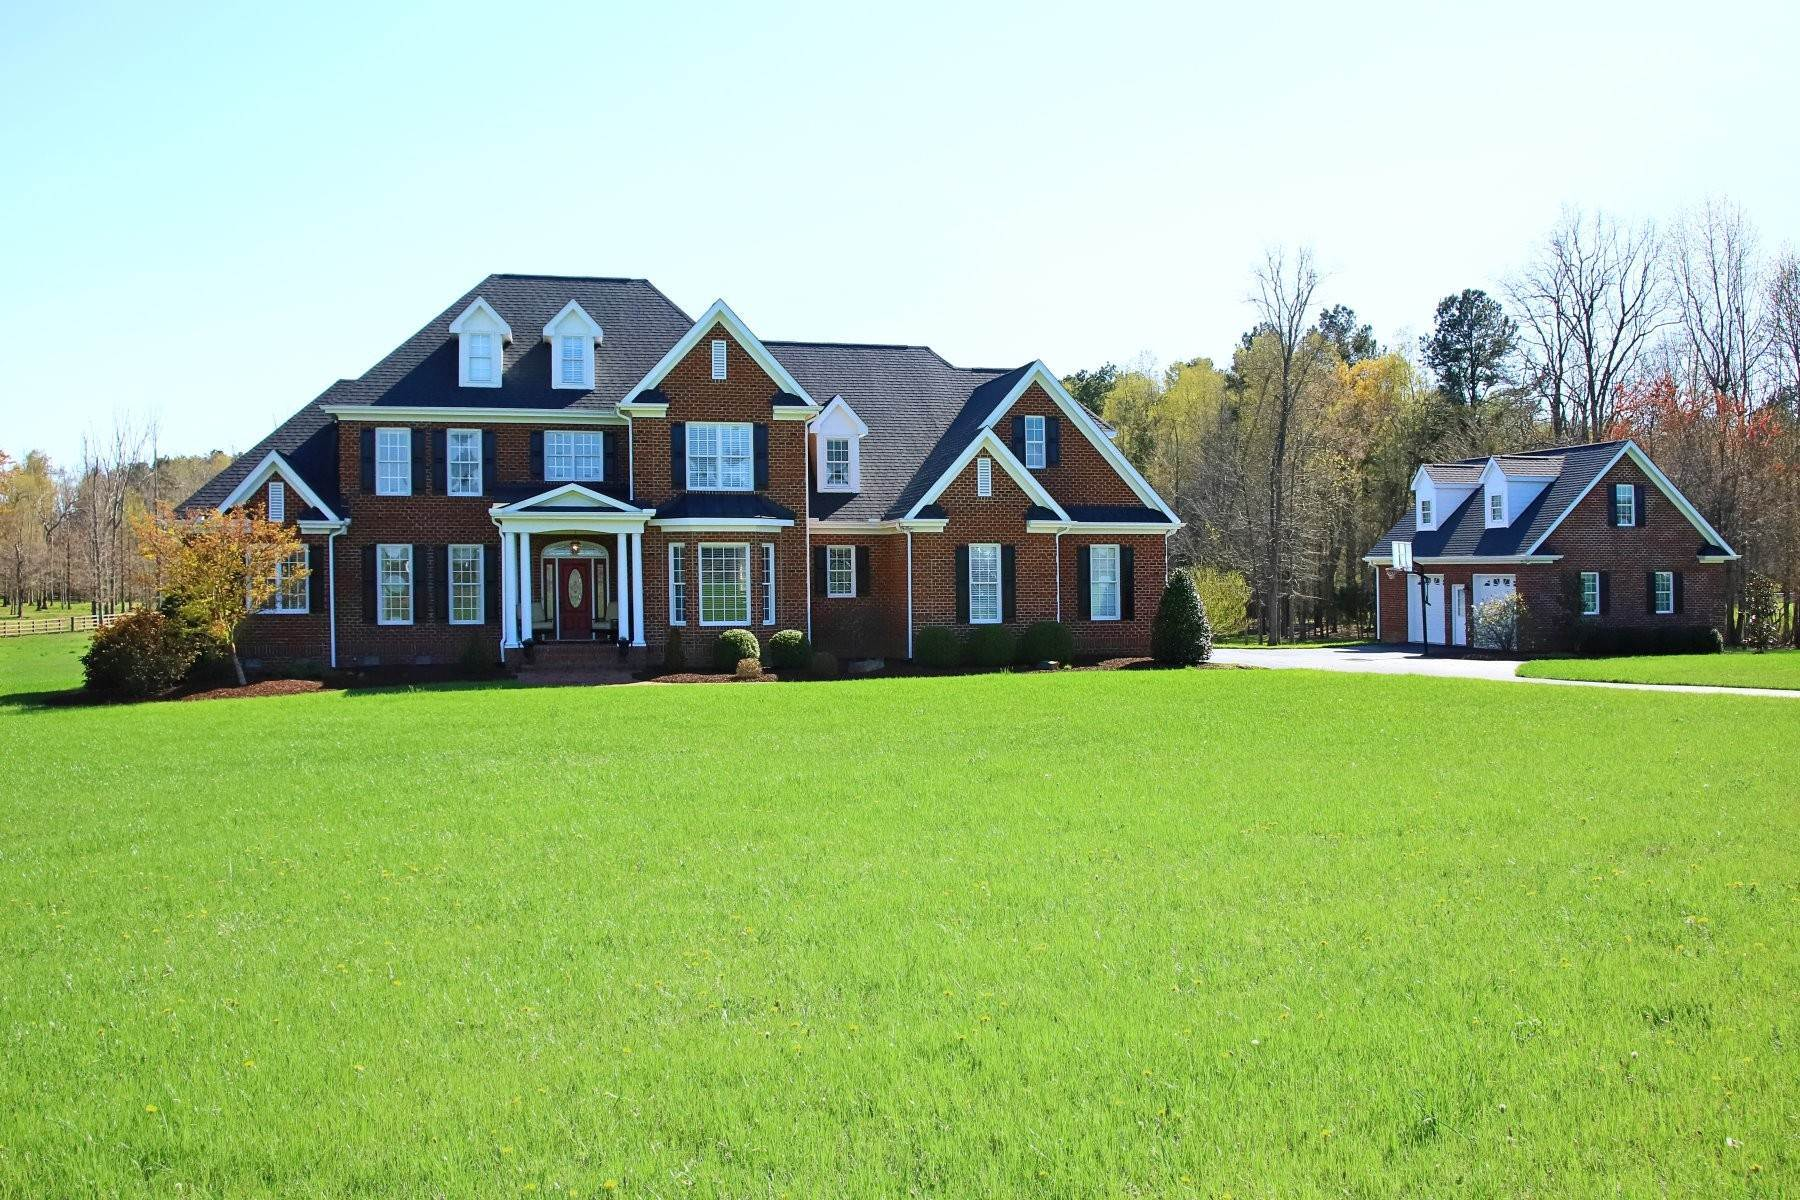 Single Family Homes for Sale at 2005 Phelps Road Hillsborough, North Carolina 27278 United States